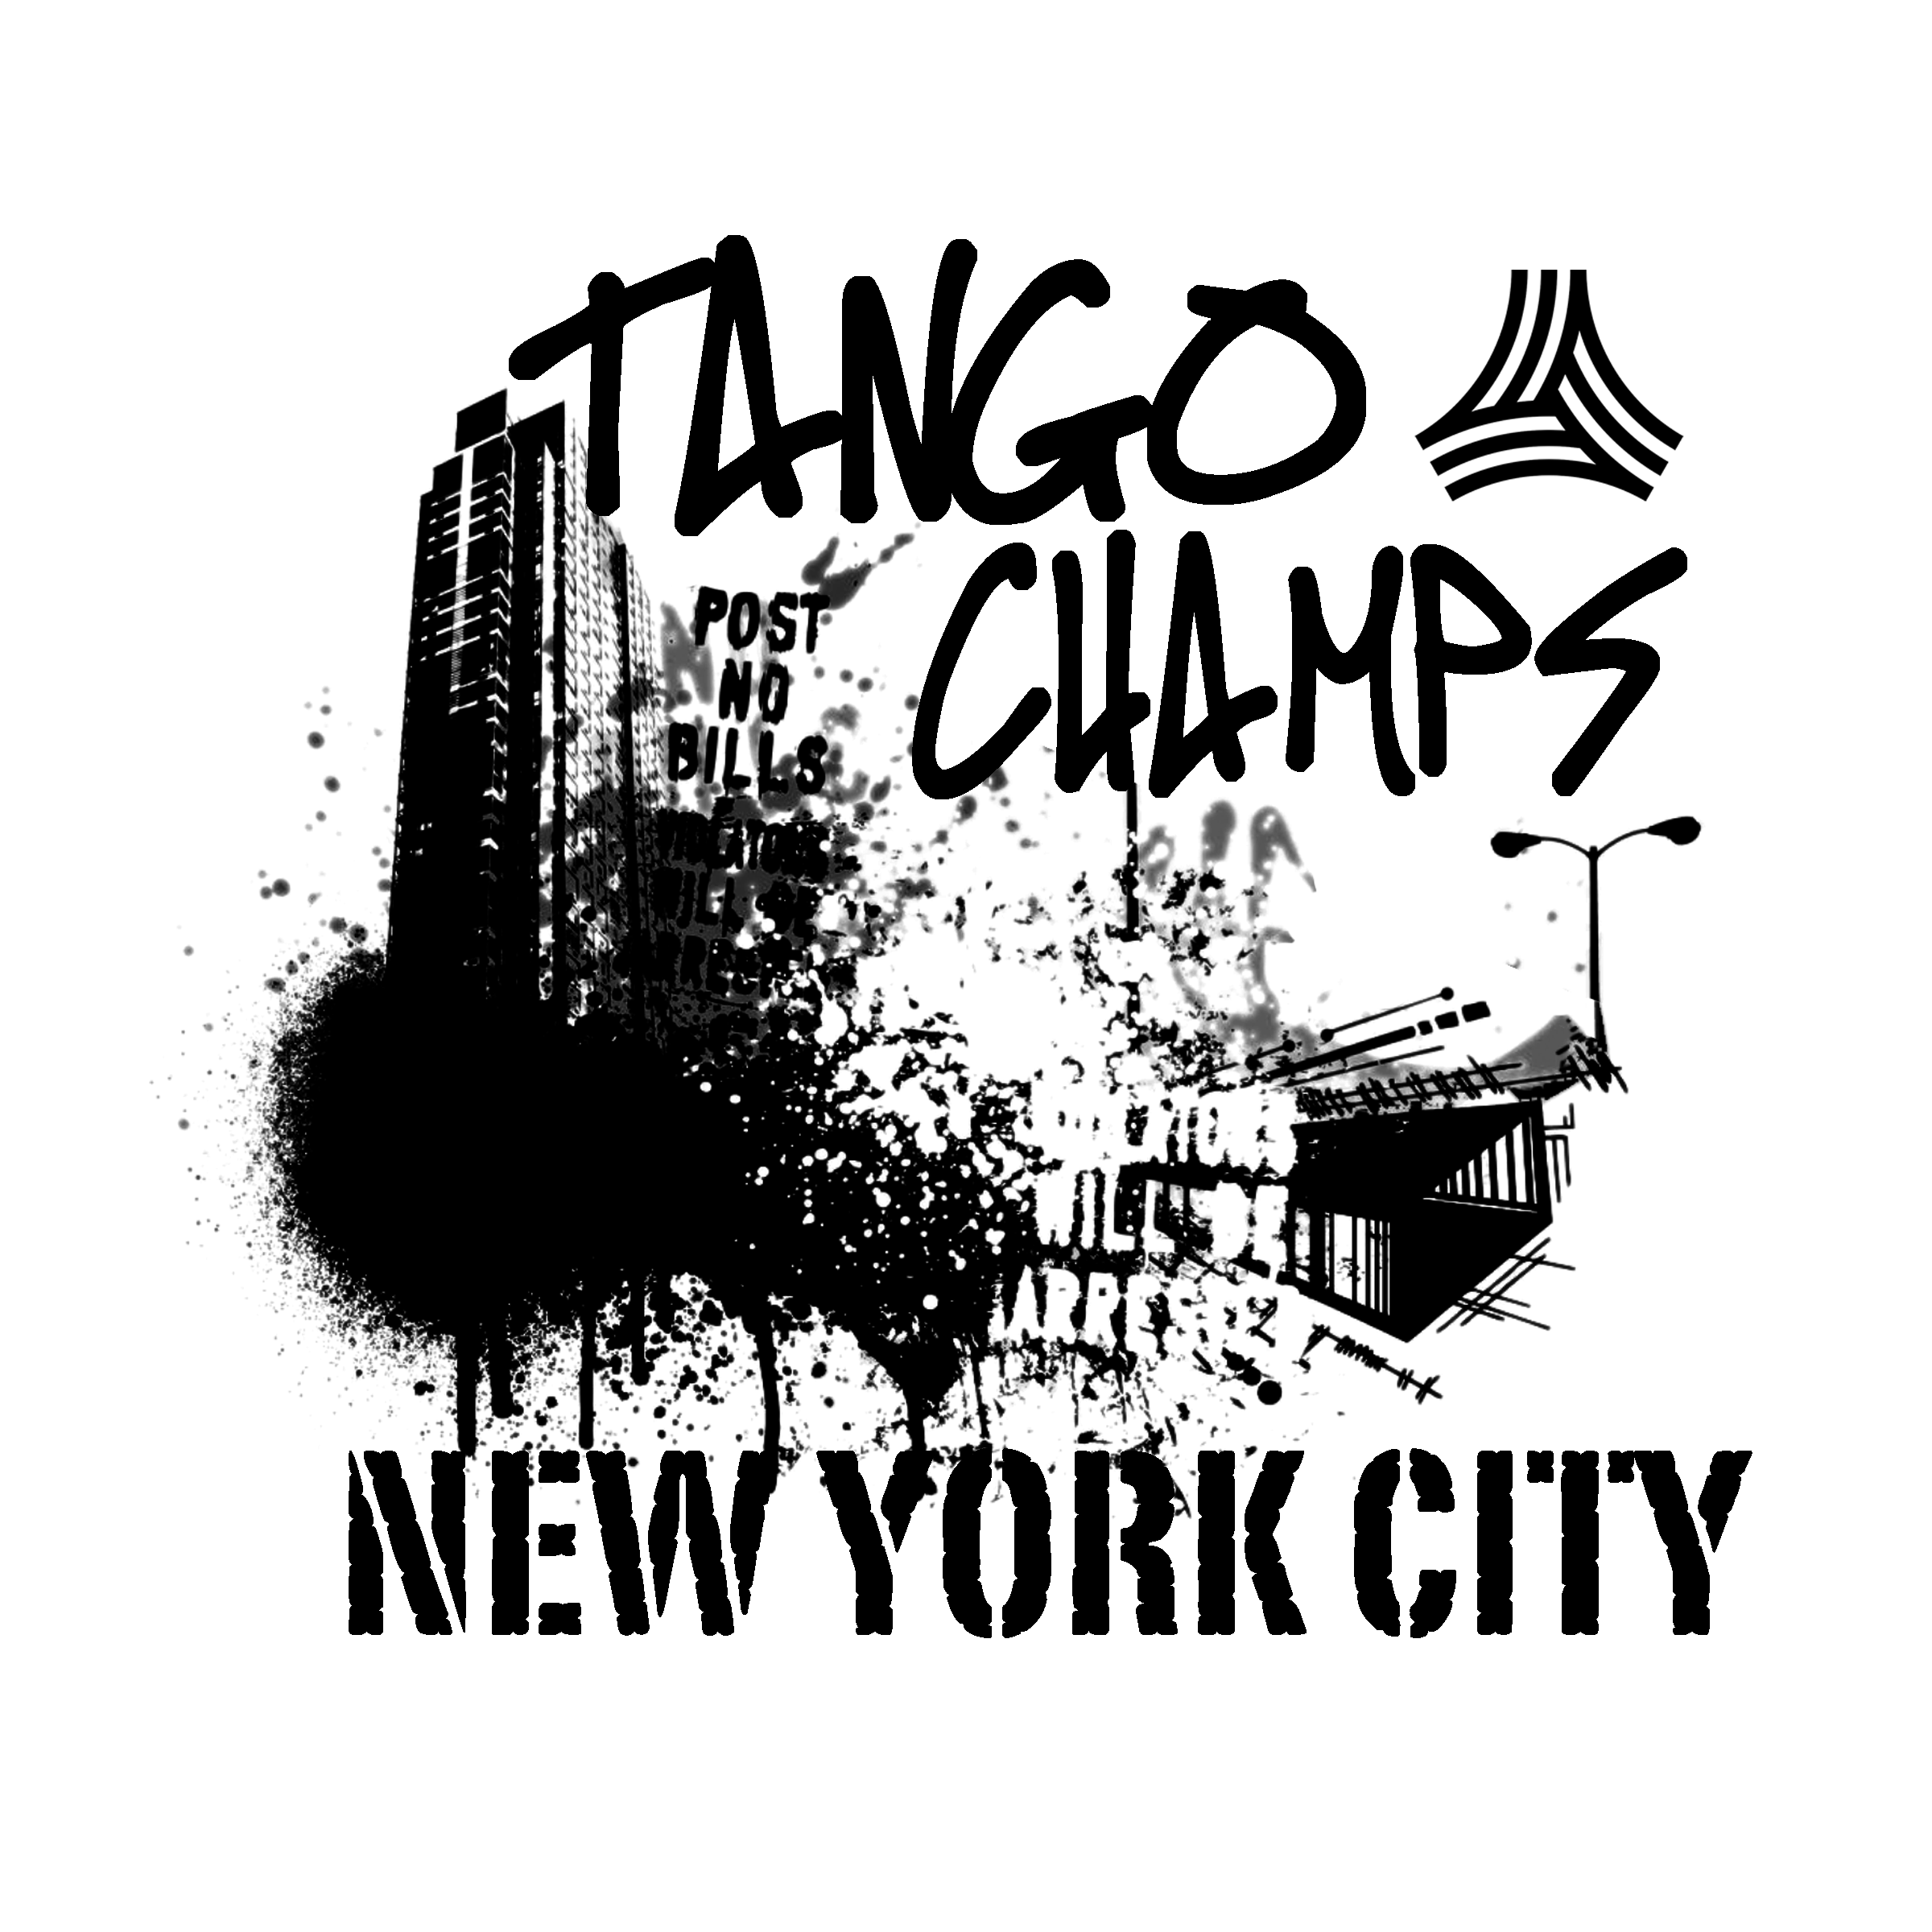 Jacket design for  Adidas Tango  Soccer Tournament in New York City.